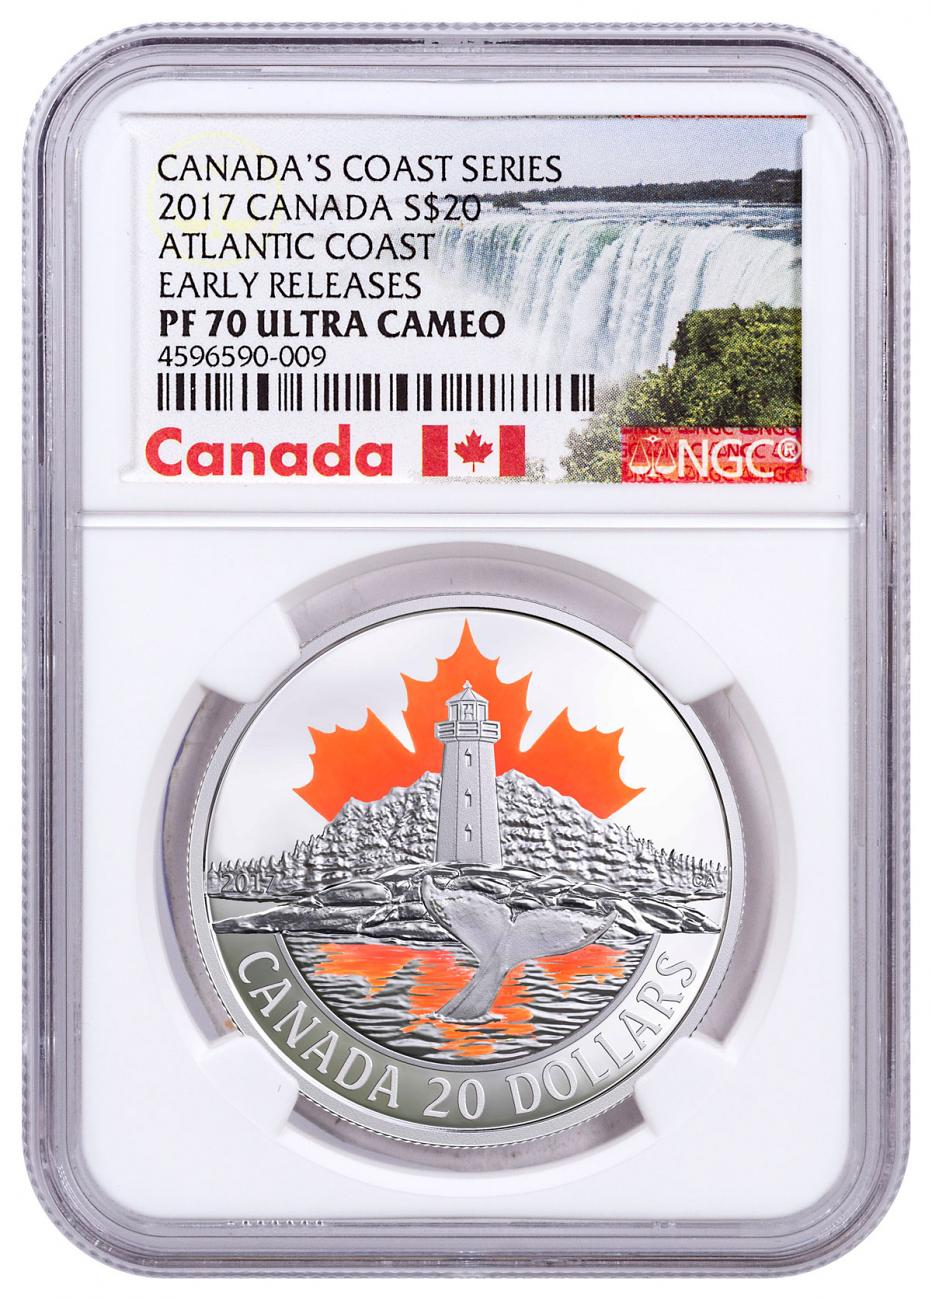 2017 Canada Canada's Coast - Atlantic Coast 1 oz Silver Colorized Proof $20 Coin NGC PF70 UC ER